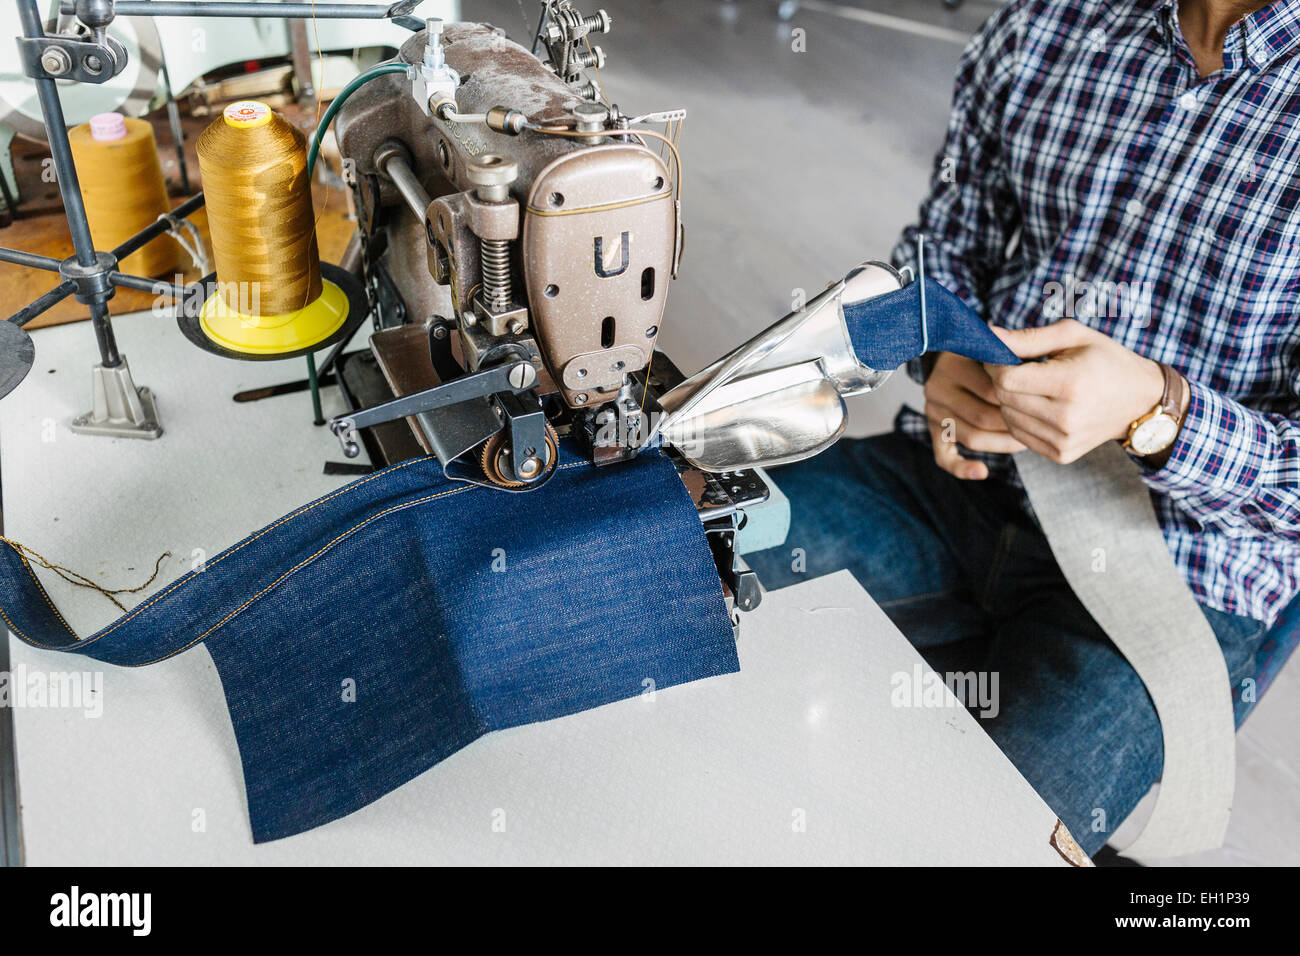 Midsection of tailor sewing jeans in factory - Stock Image